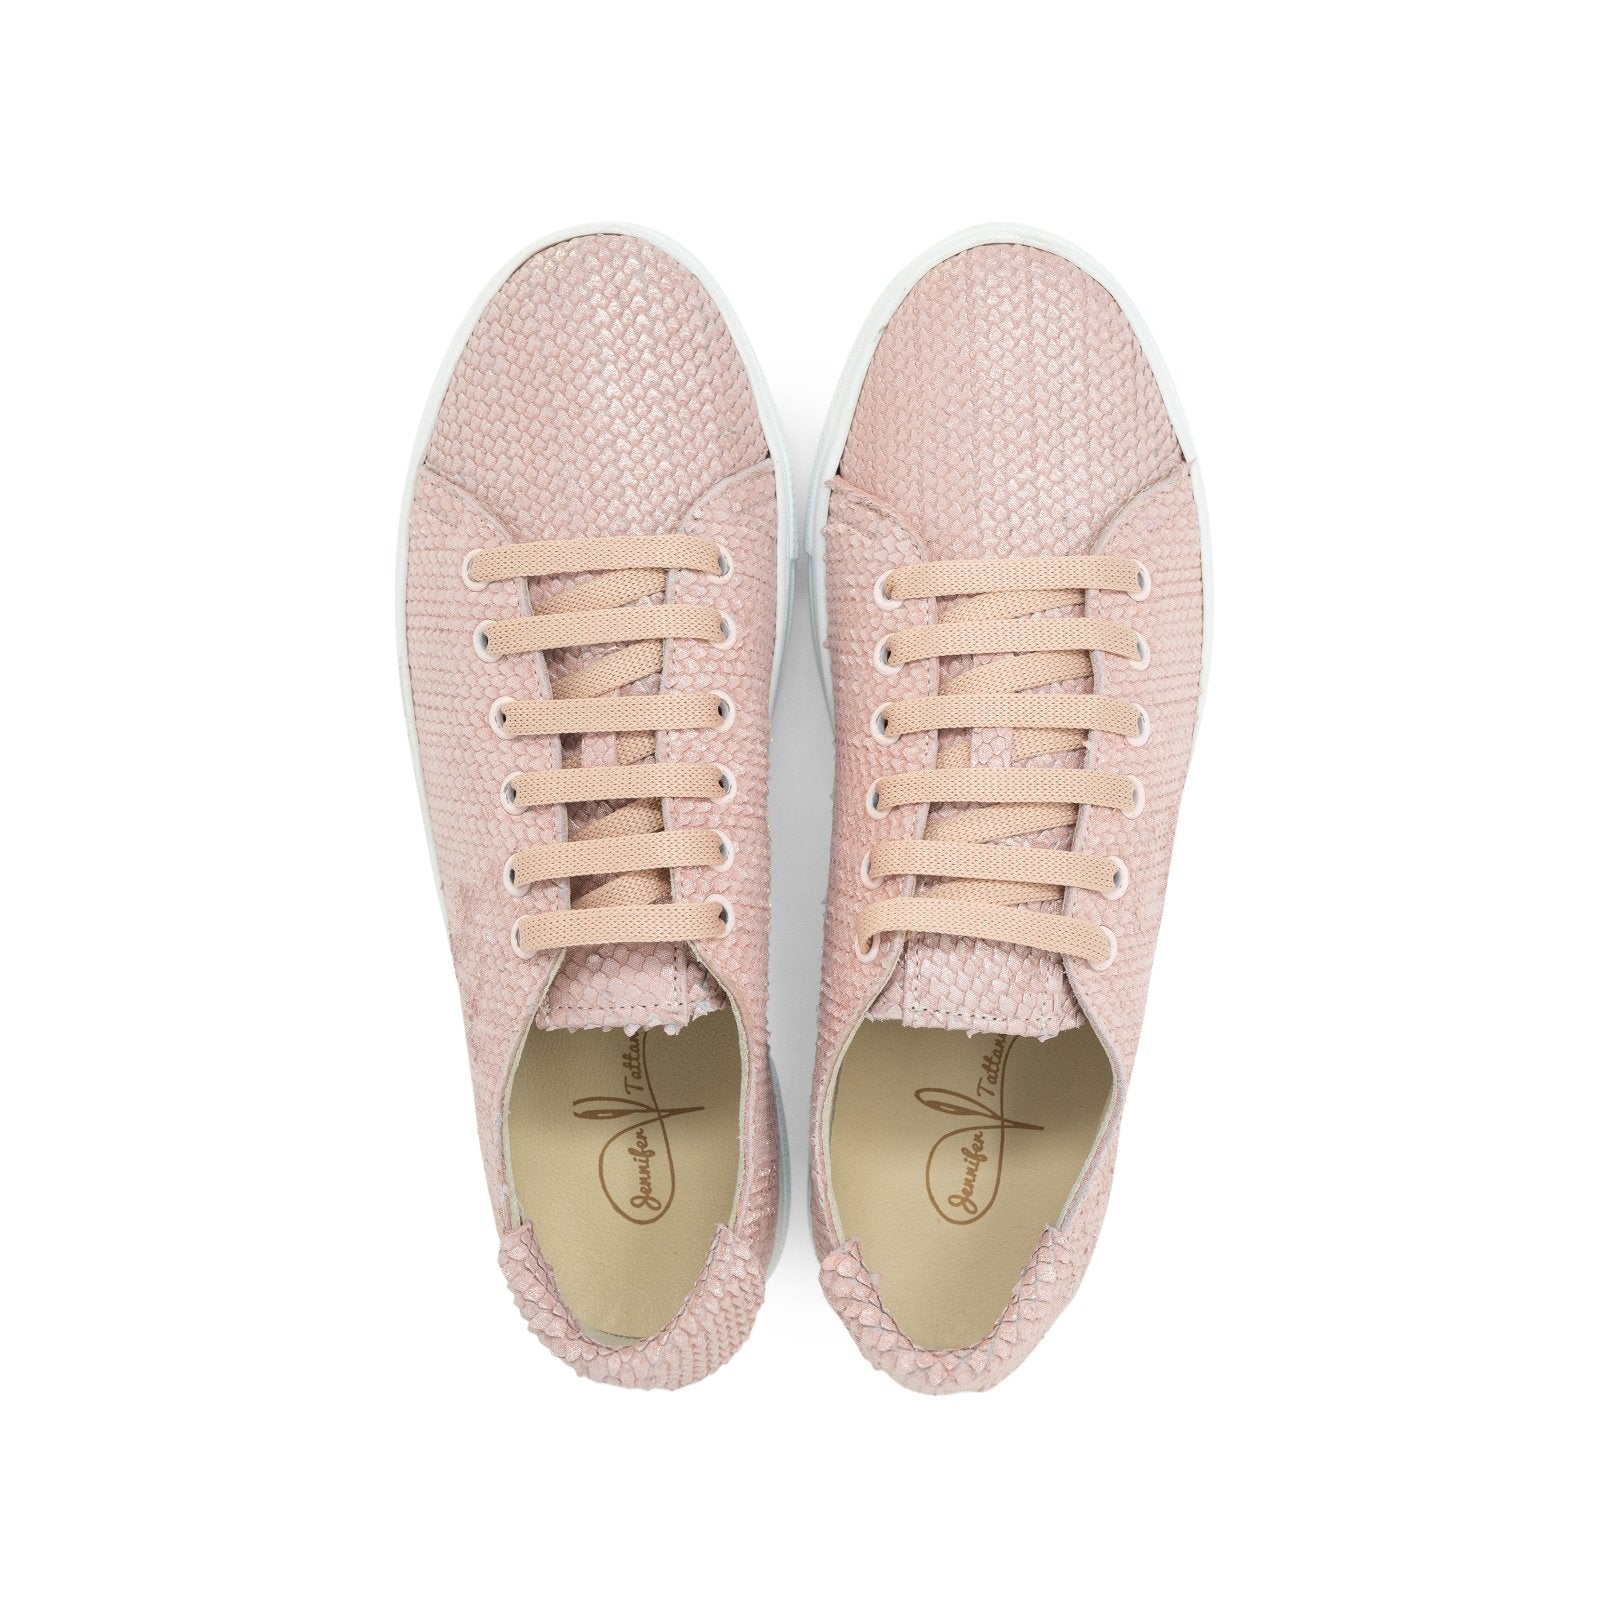 Women Python Print Leather Sneakers in Dust Rose - Jennifer Tattanelli